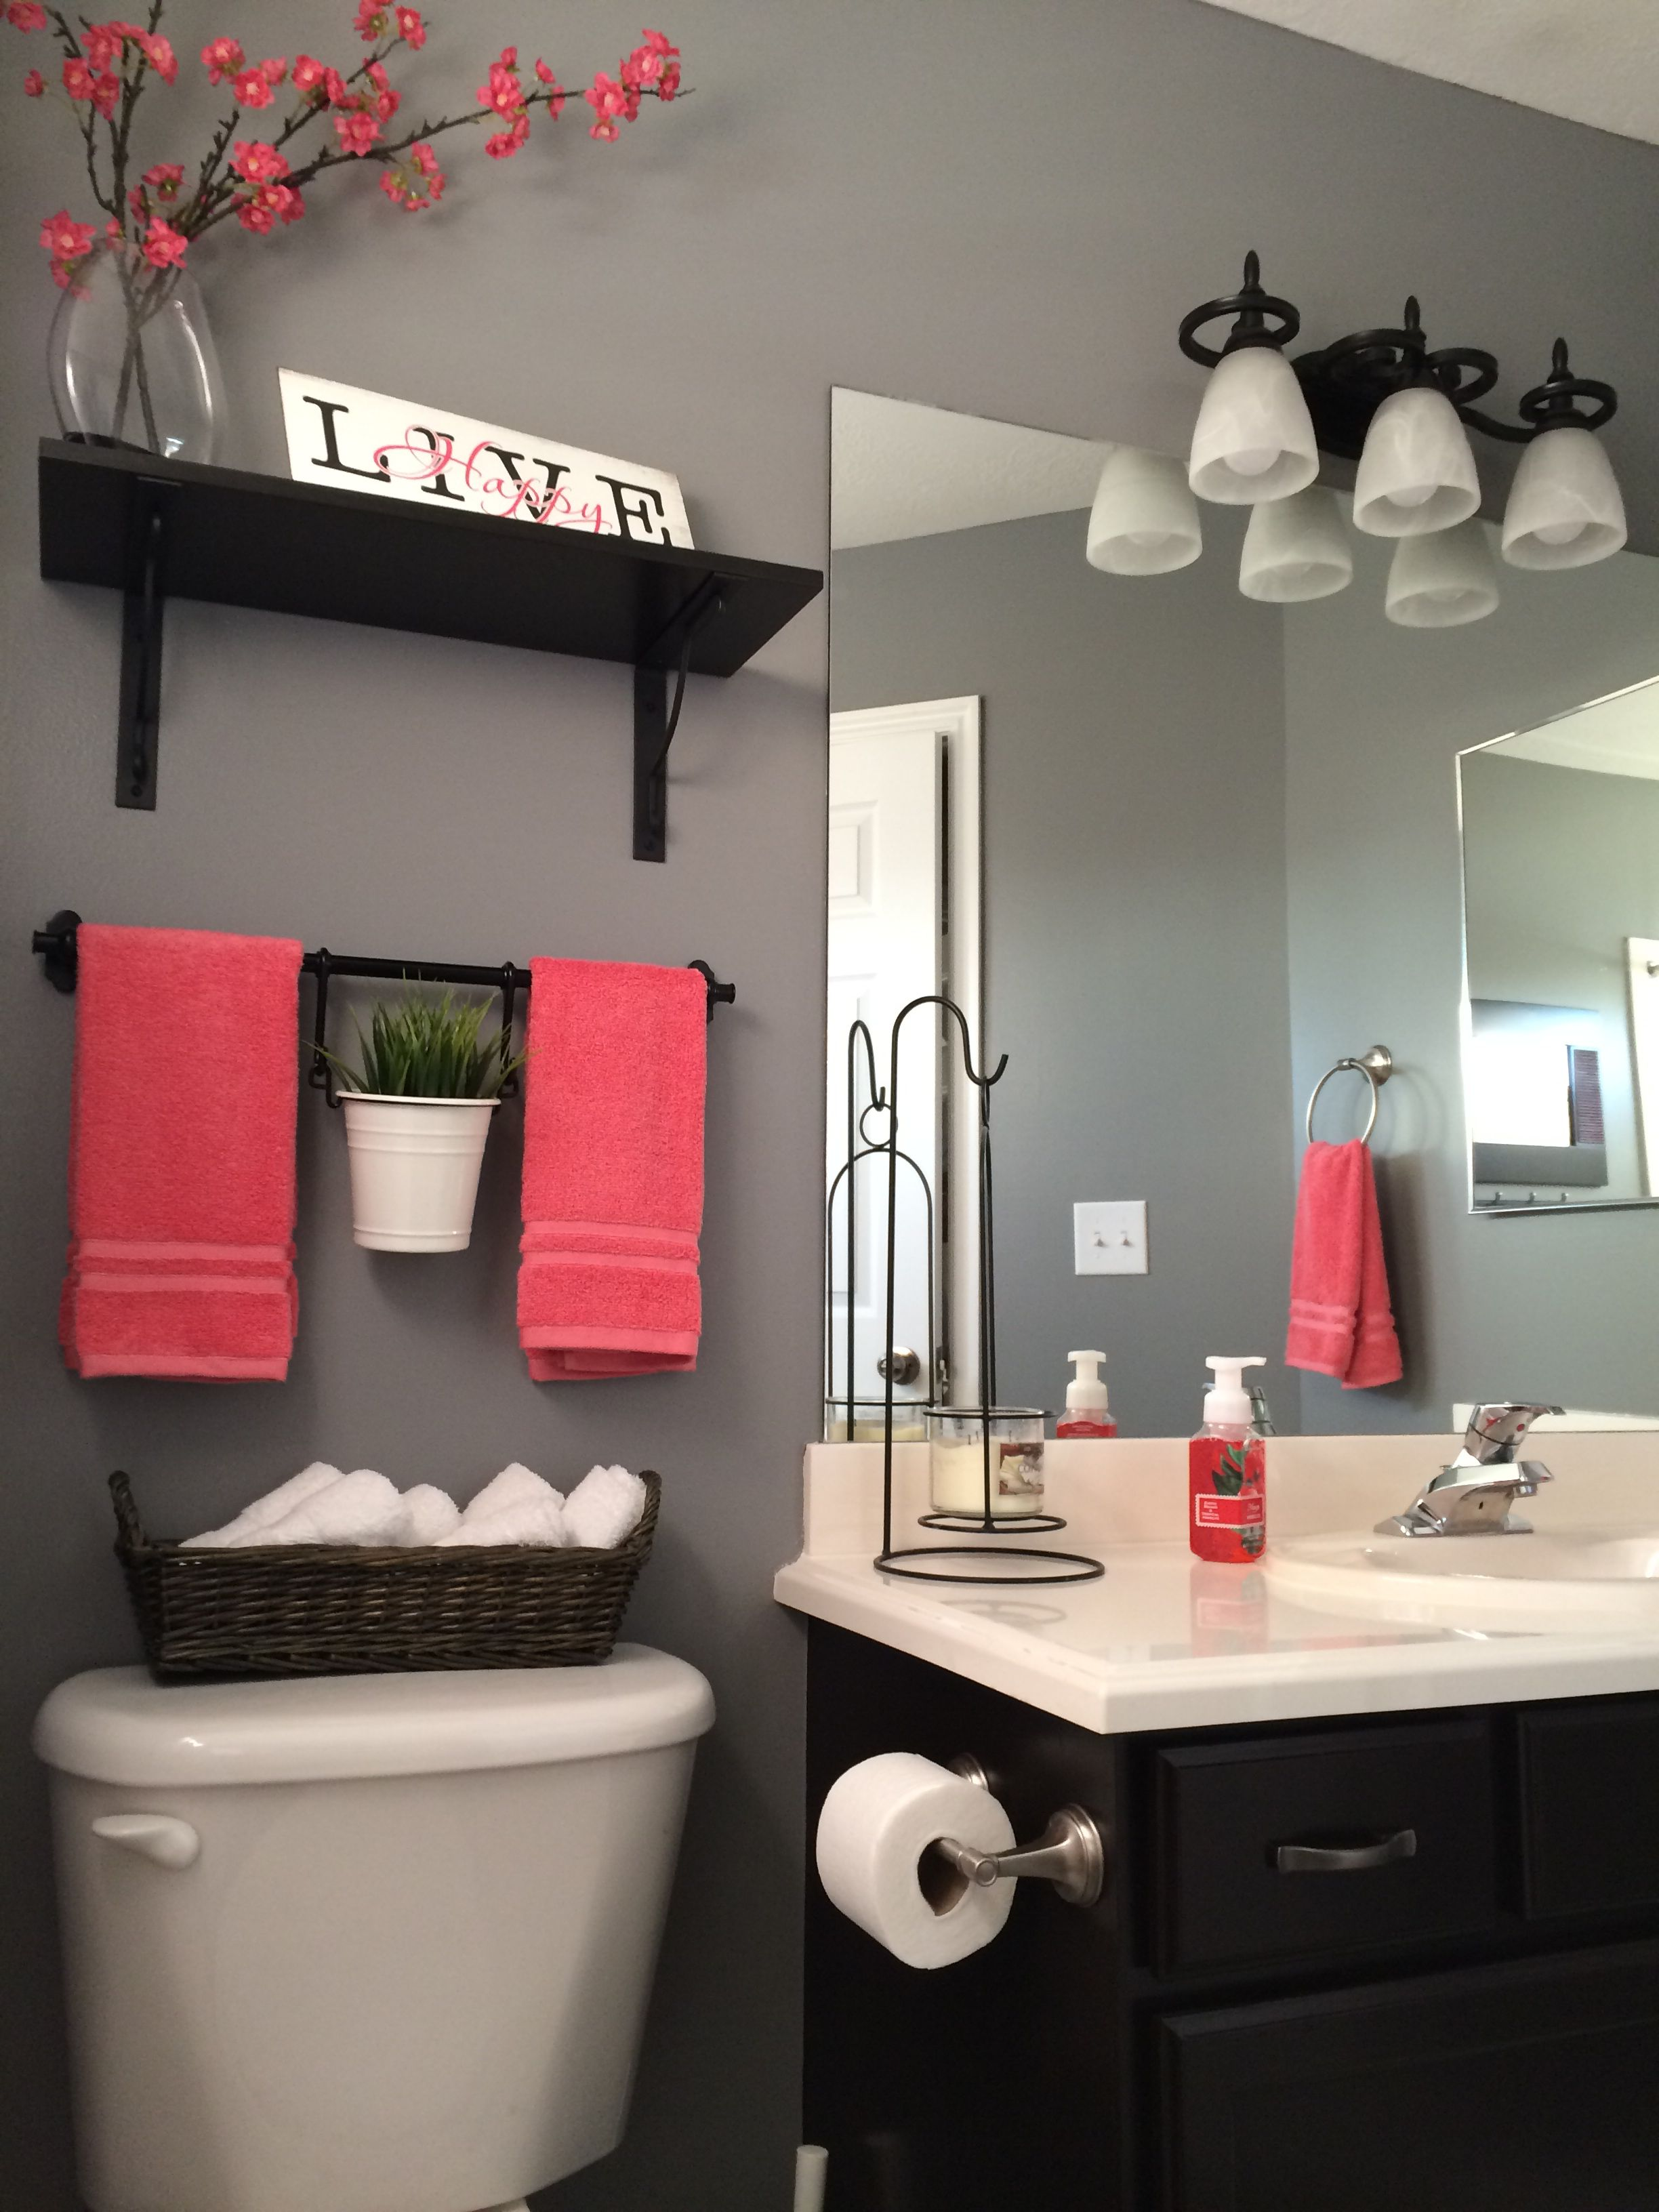 My bathroom remodel. Love it!!! Kohls towels Kohls shower curtain Home Depot